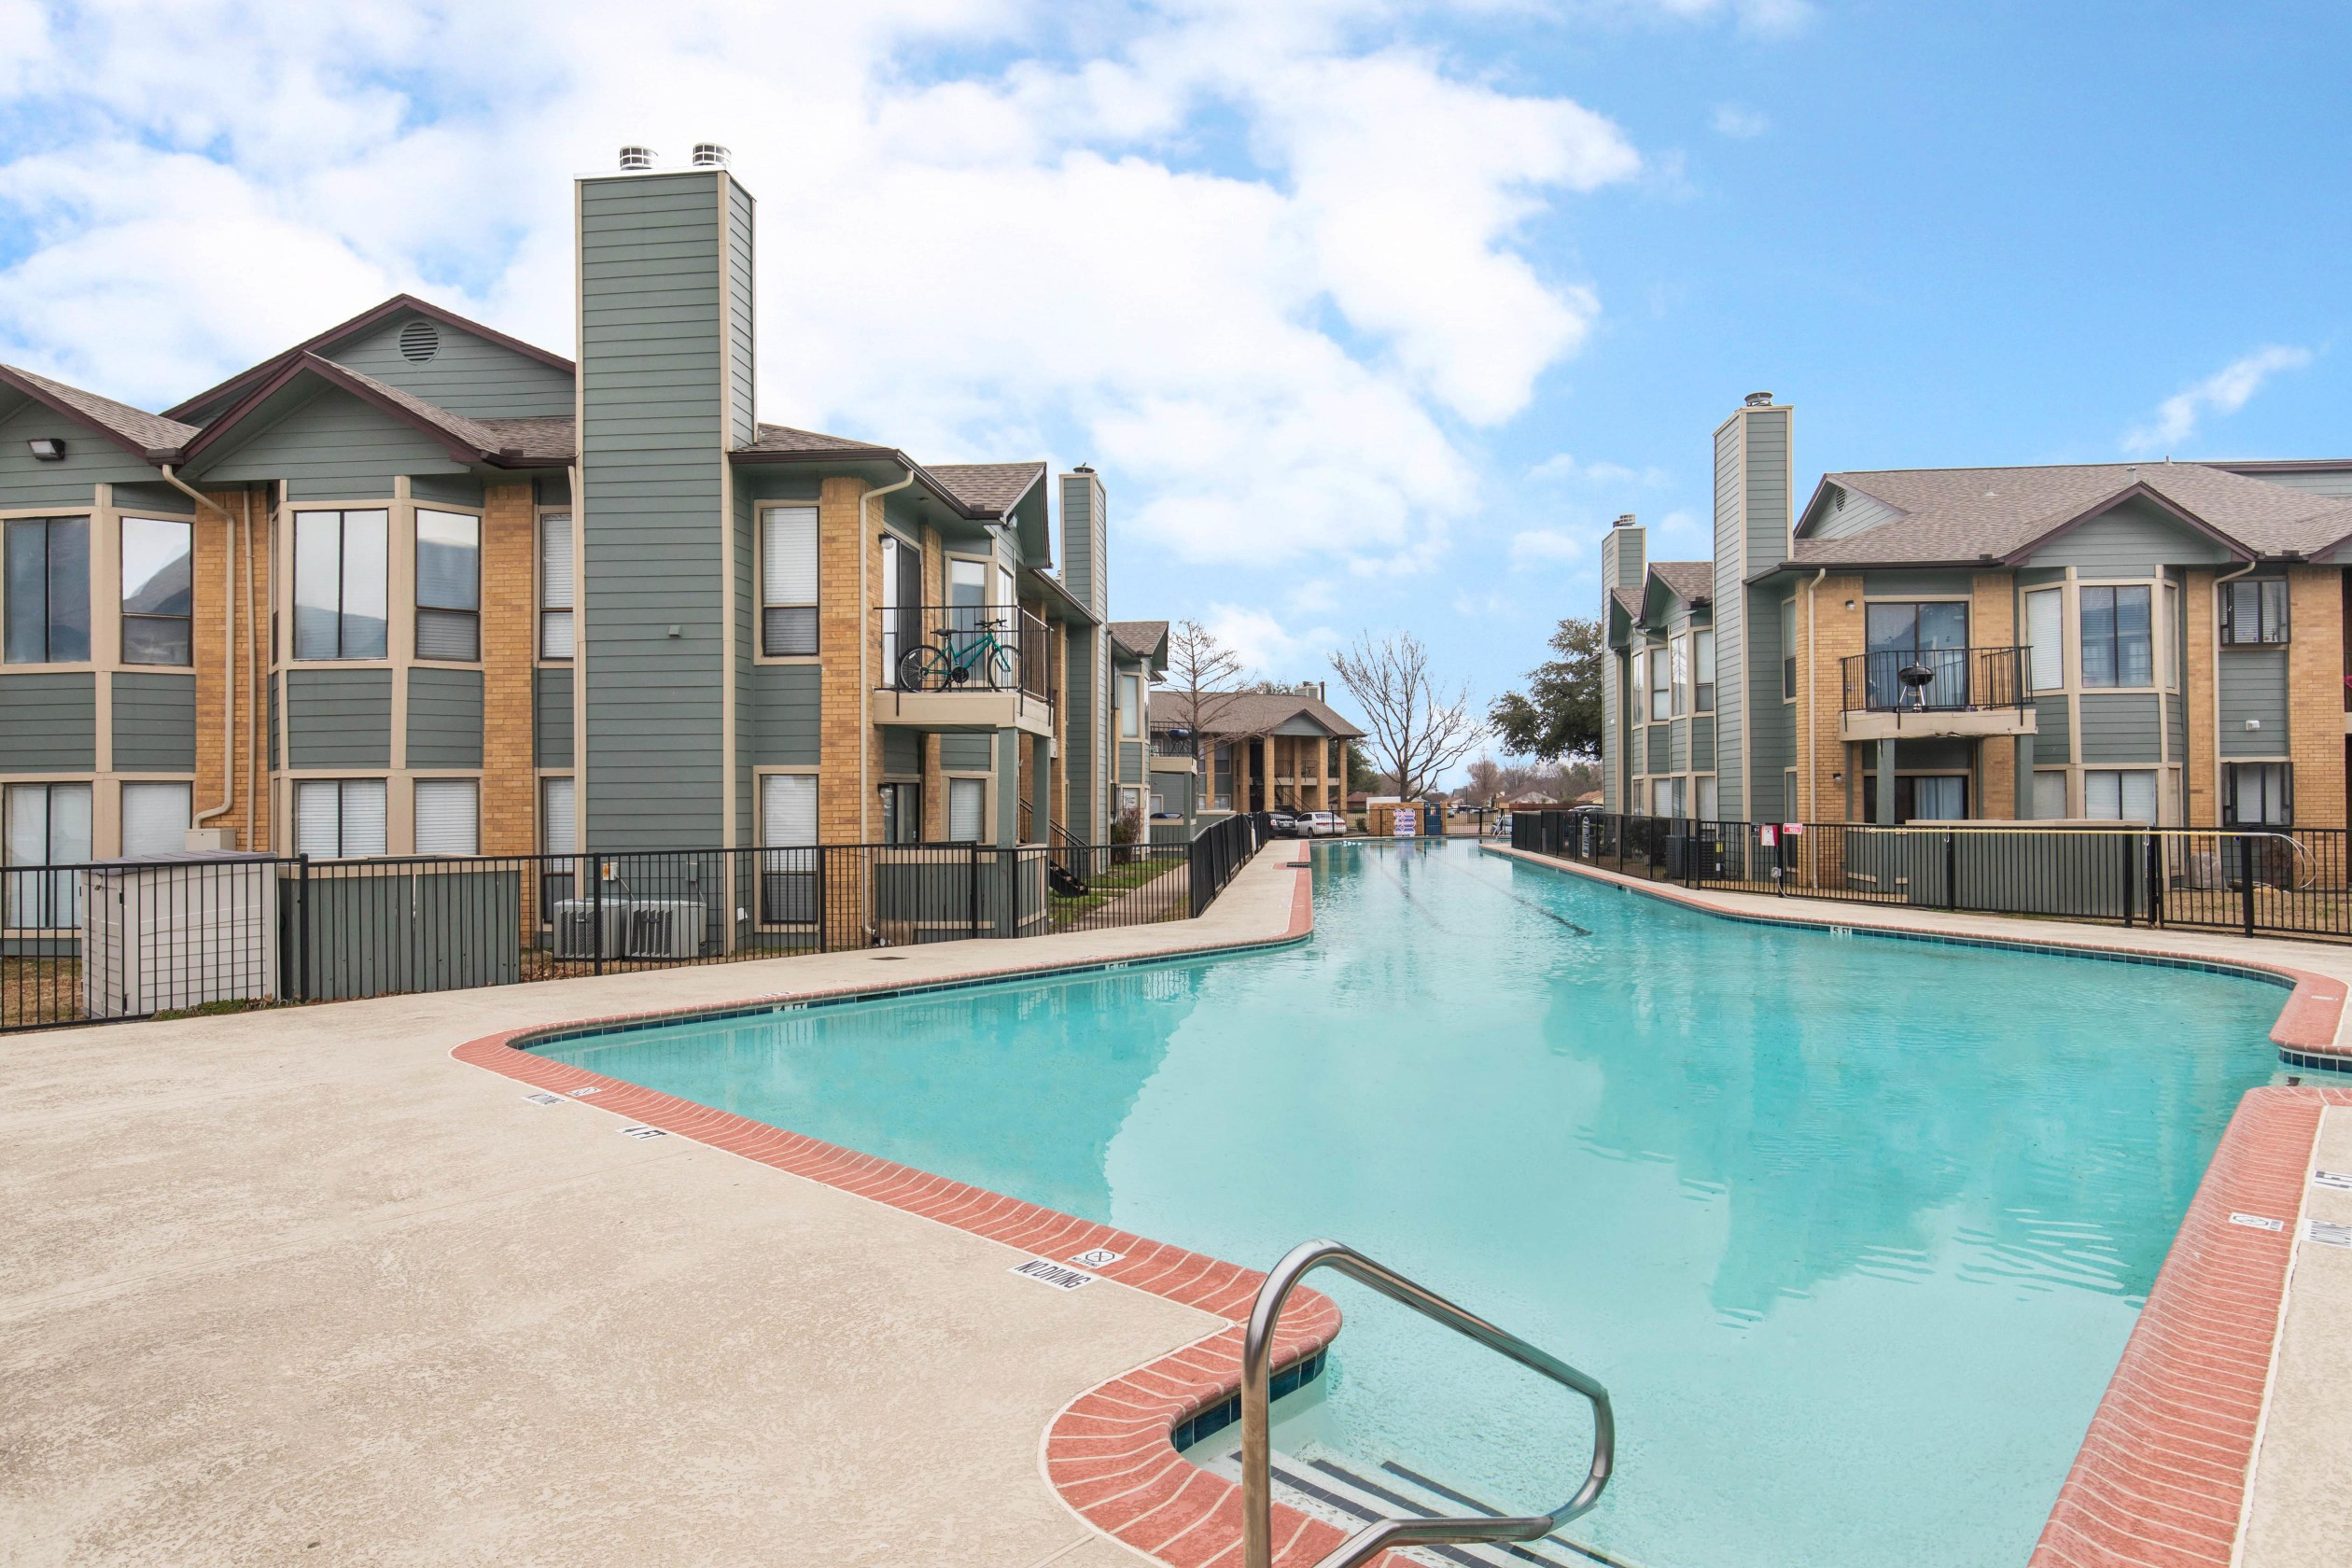 Apartments Near Amberton Lake Village West Apartments for Amberton University Students in Garland, TX